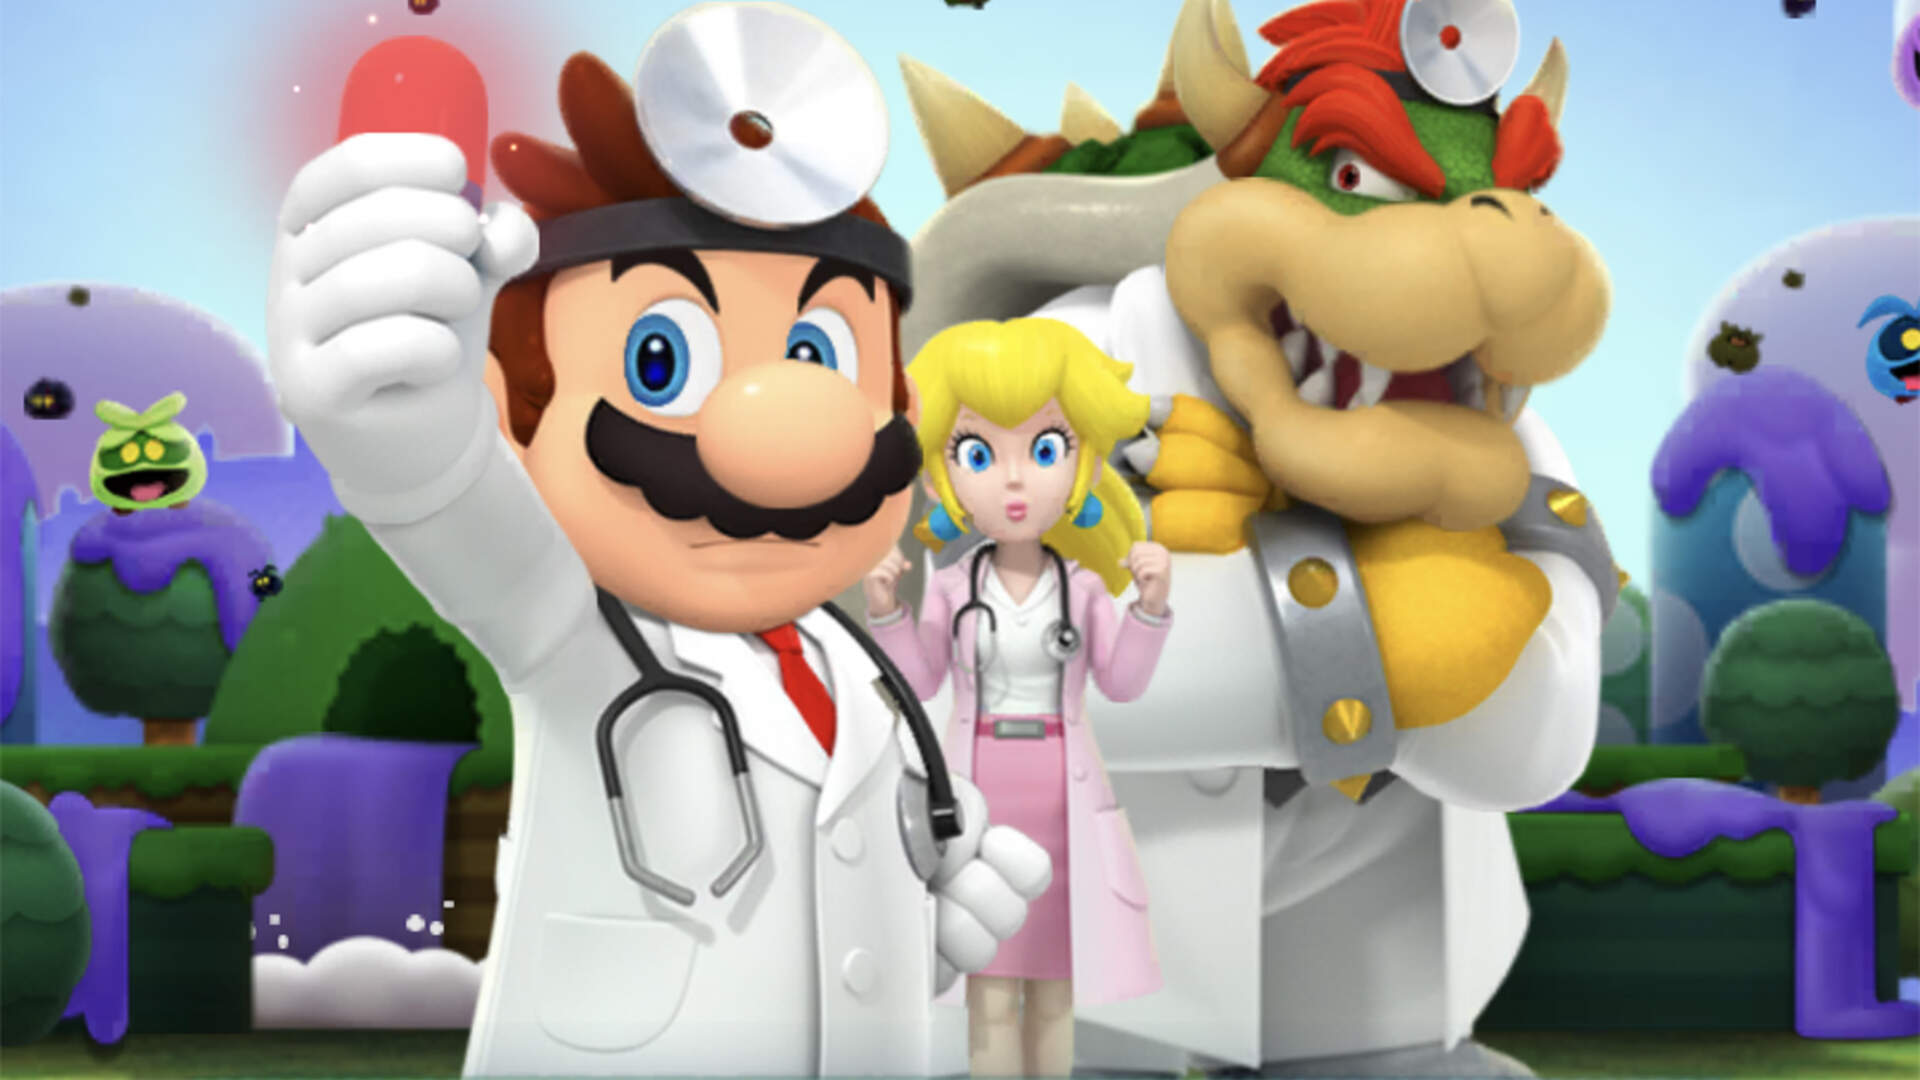 Dr. Mario World is Breaking My Brain, But in a Good Way